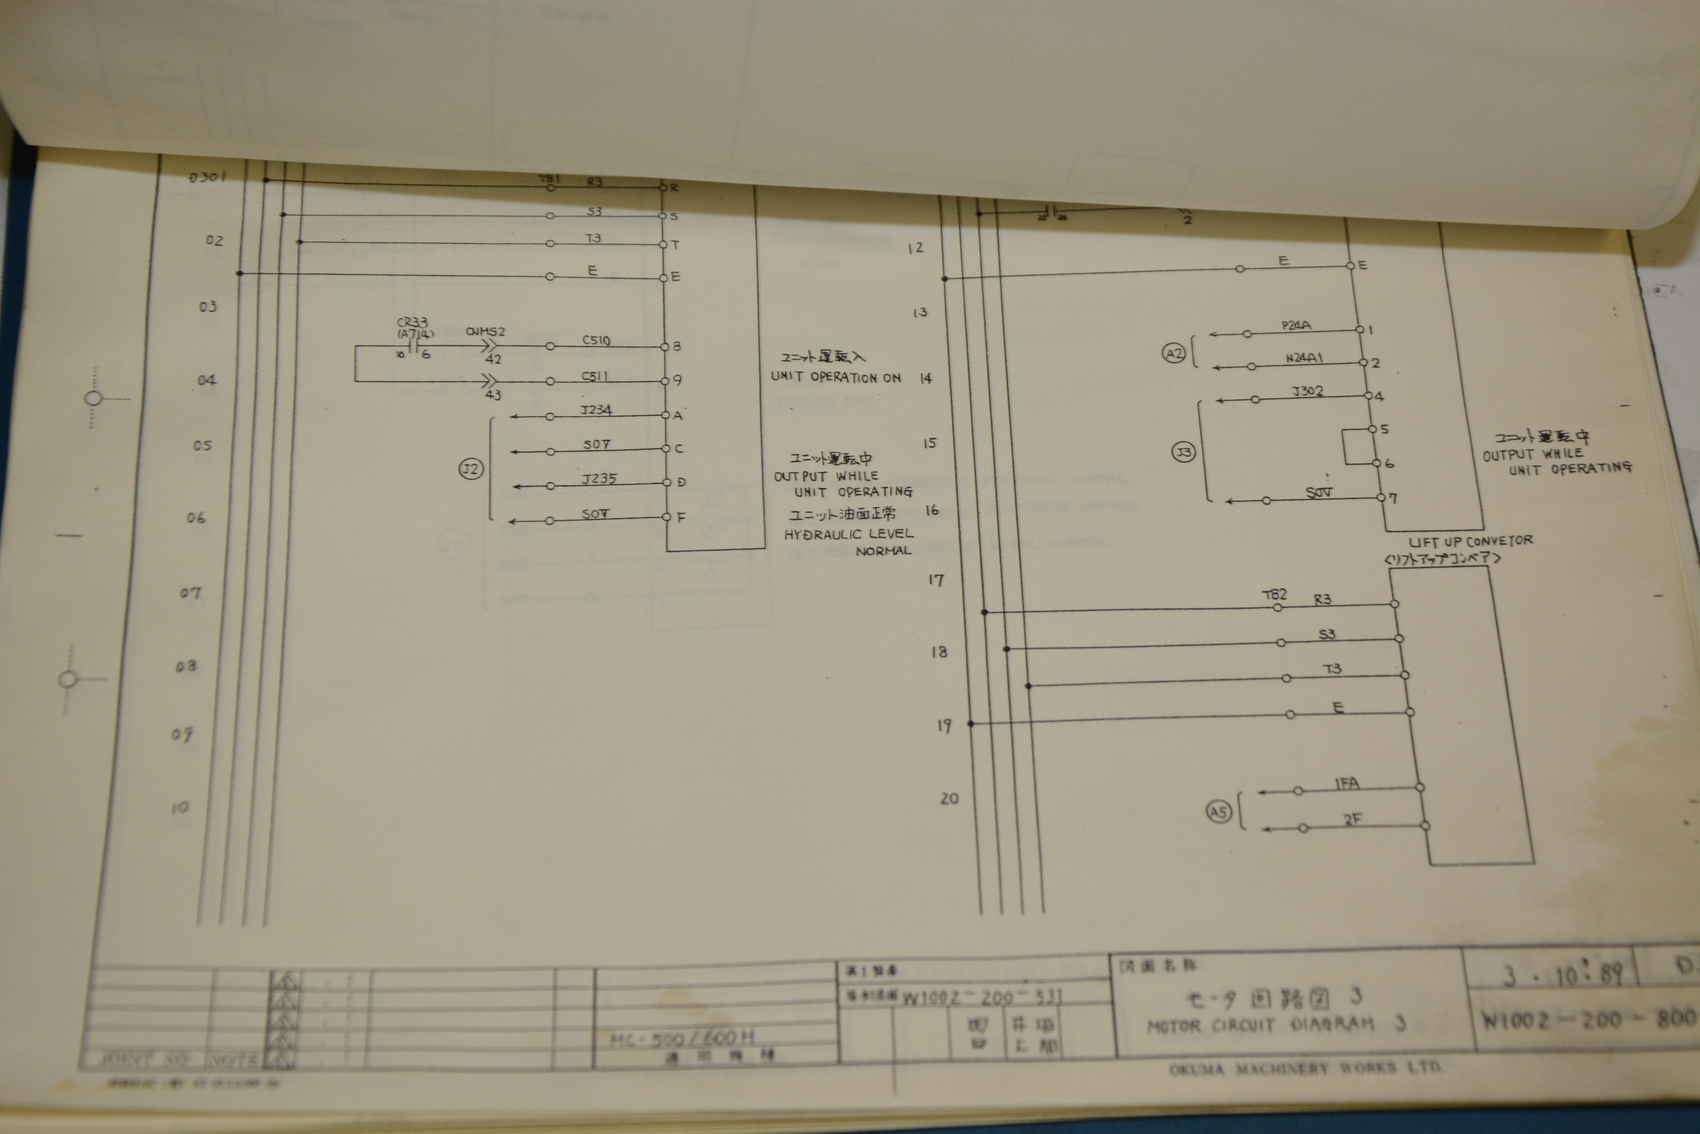 Schematic    manual for Okuma CNC MC500H 5020    control       wiring       diagram    INV 16987   eBay